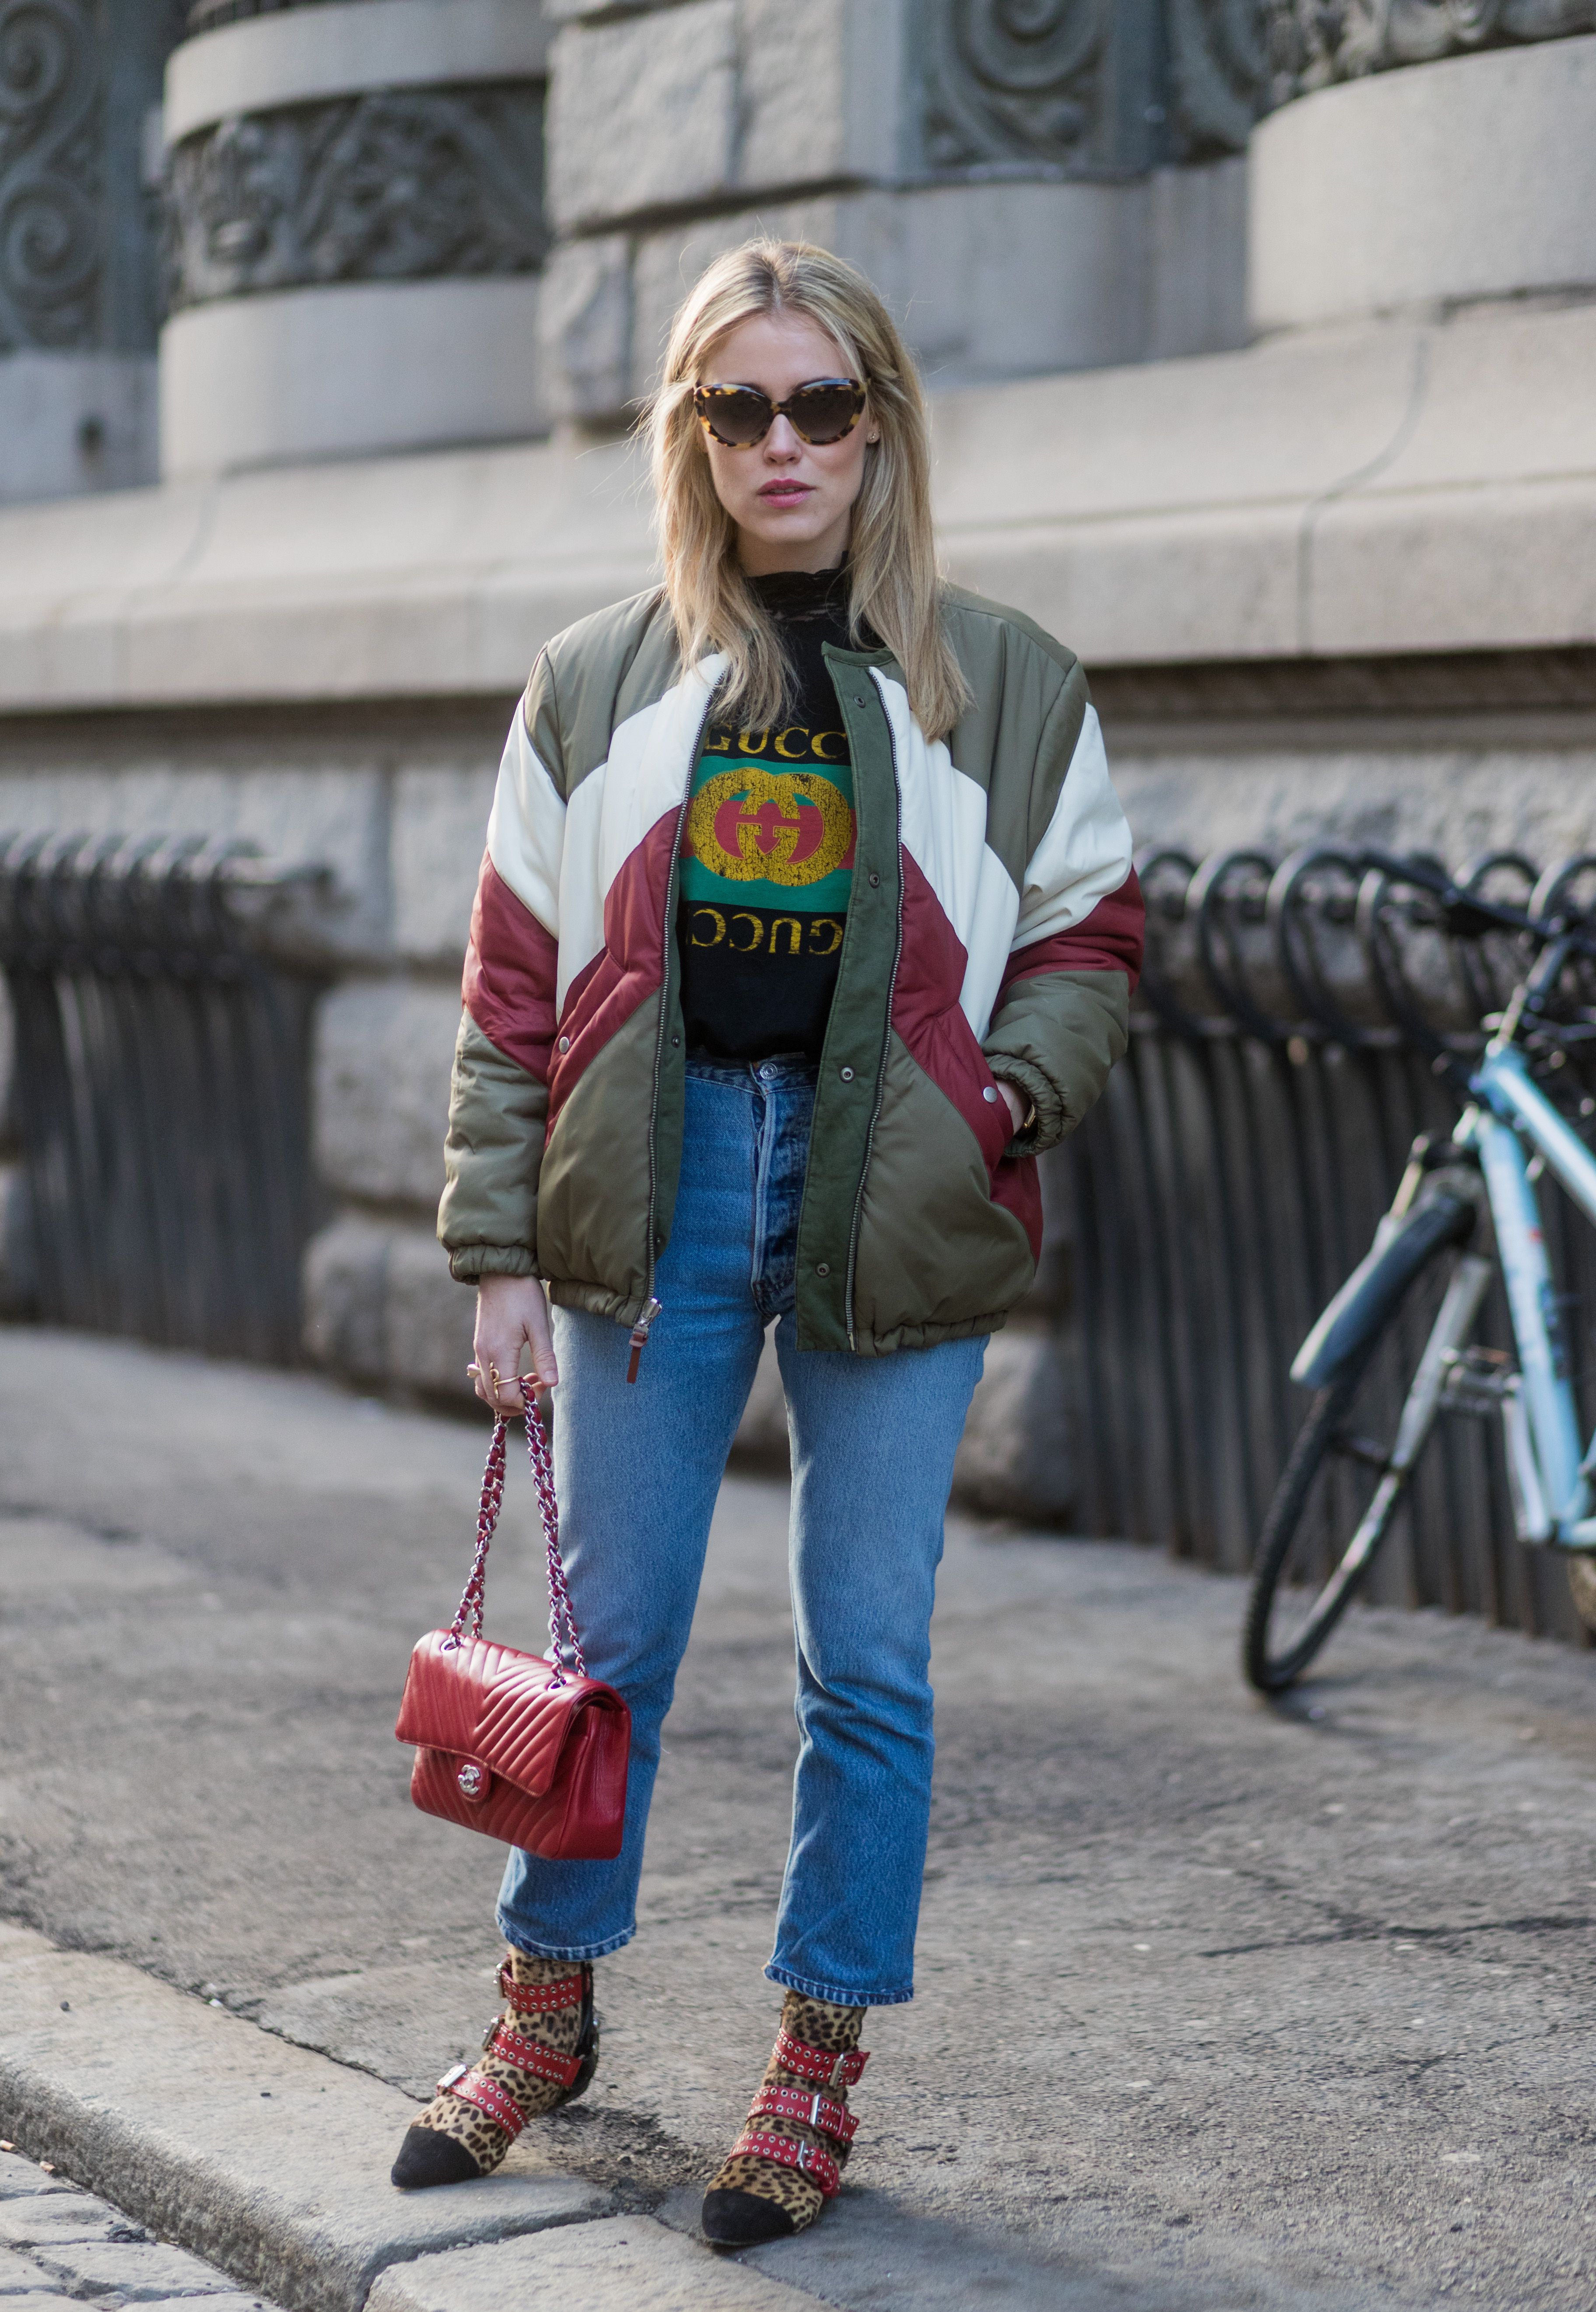 How to Dress Up a T-Shirt and Jeans to Look More Chic f7575b850